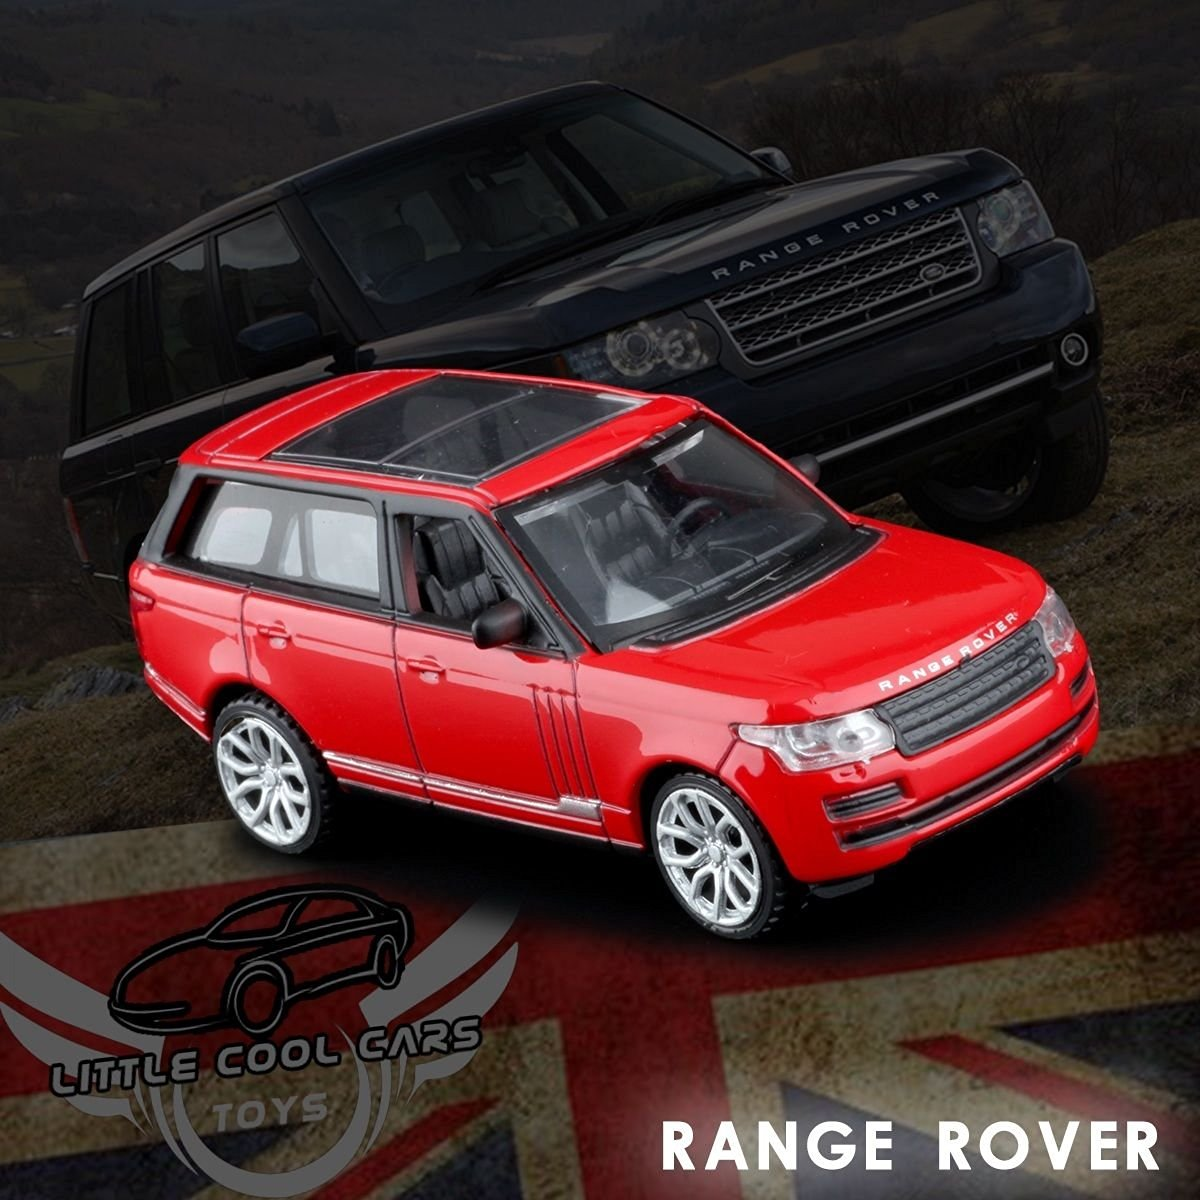 d0ee1c8ccc1f0 Cheap Diecast Rover, find Diecast Rover deals on line at Alibaba.com